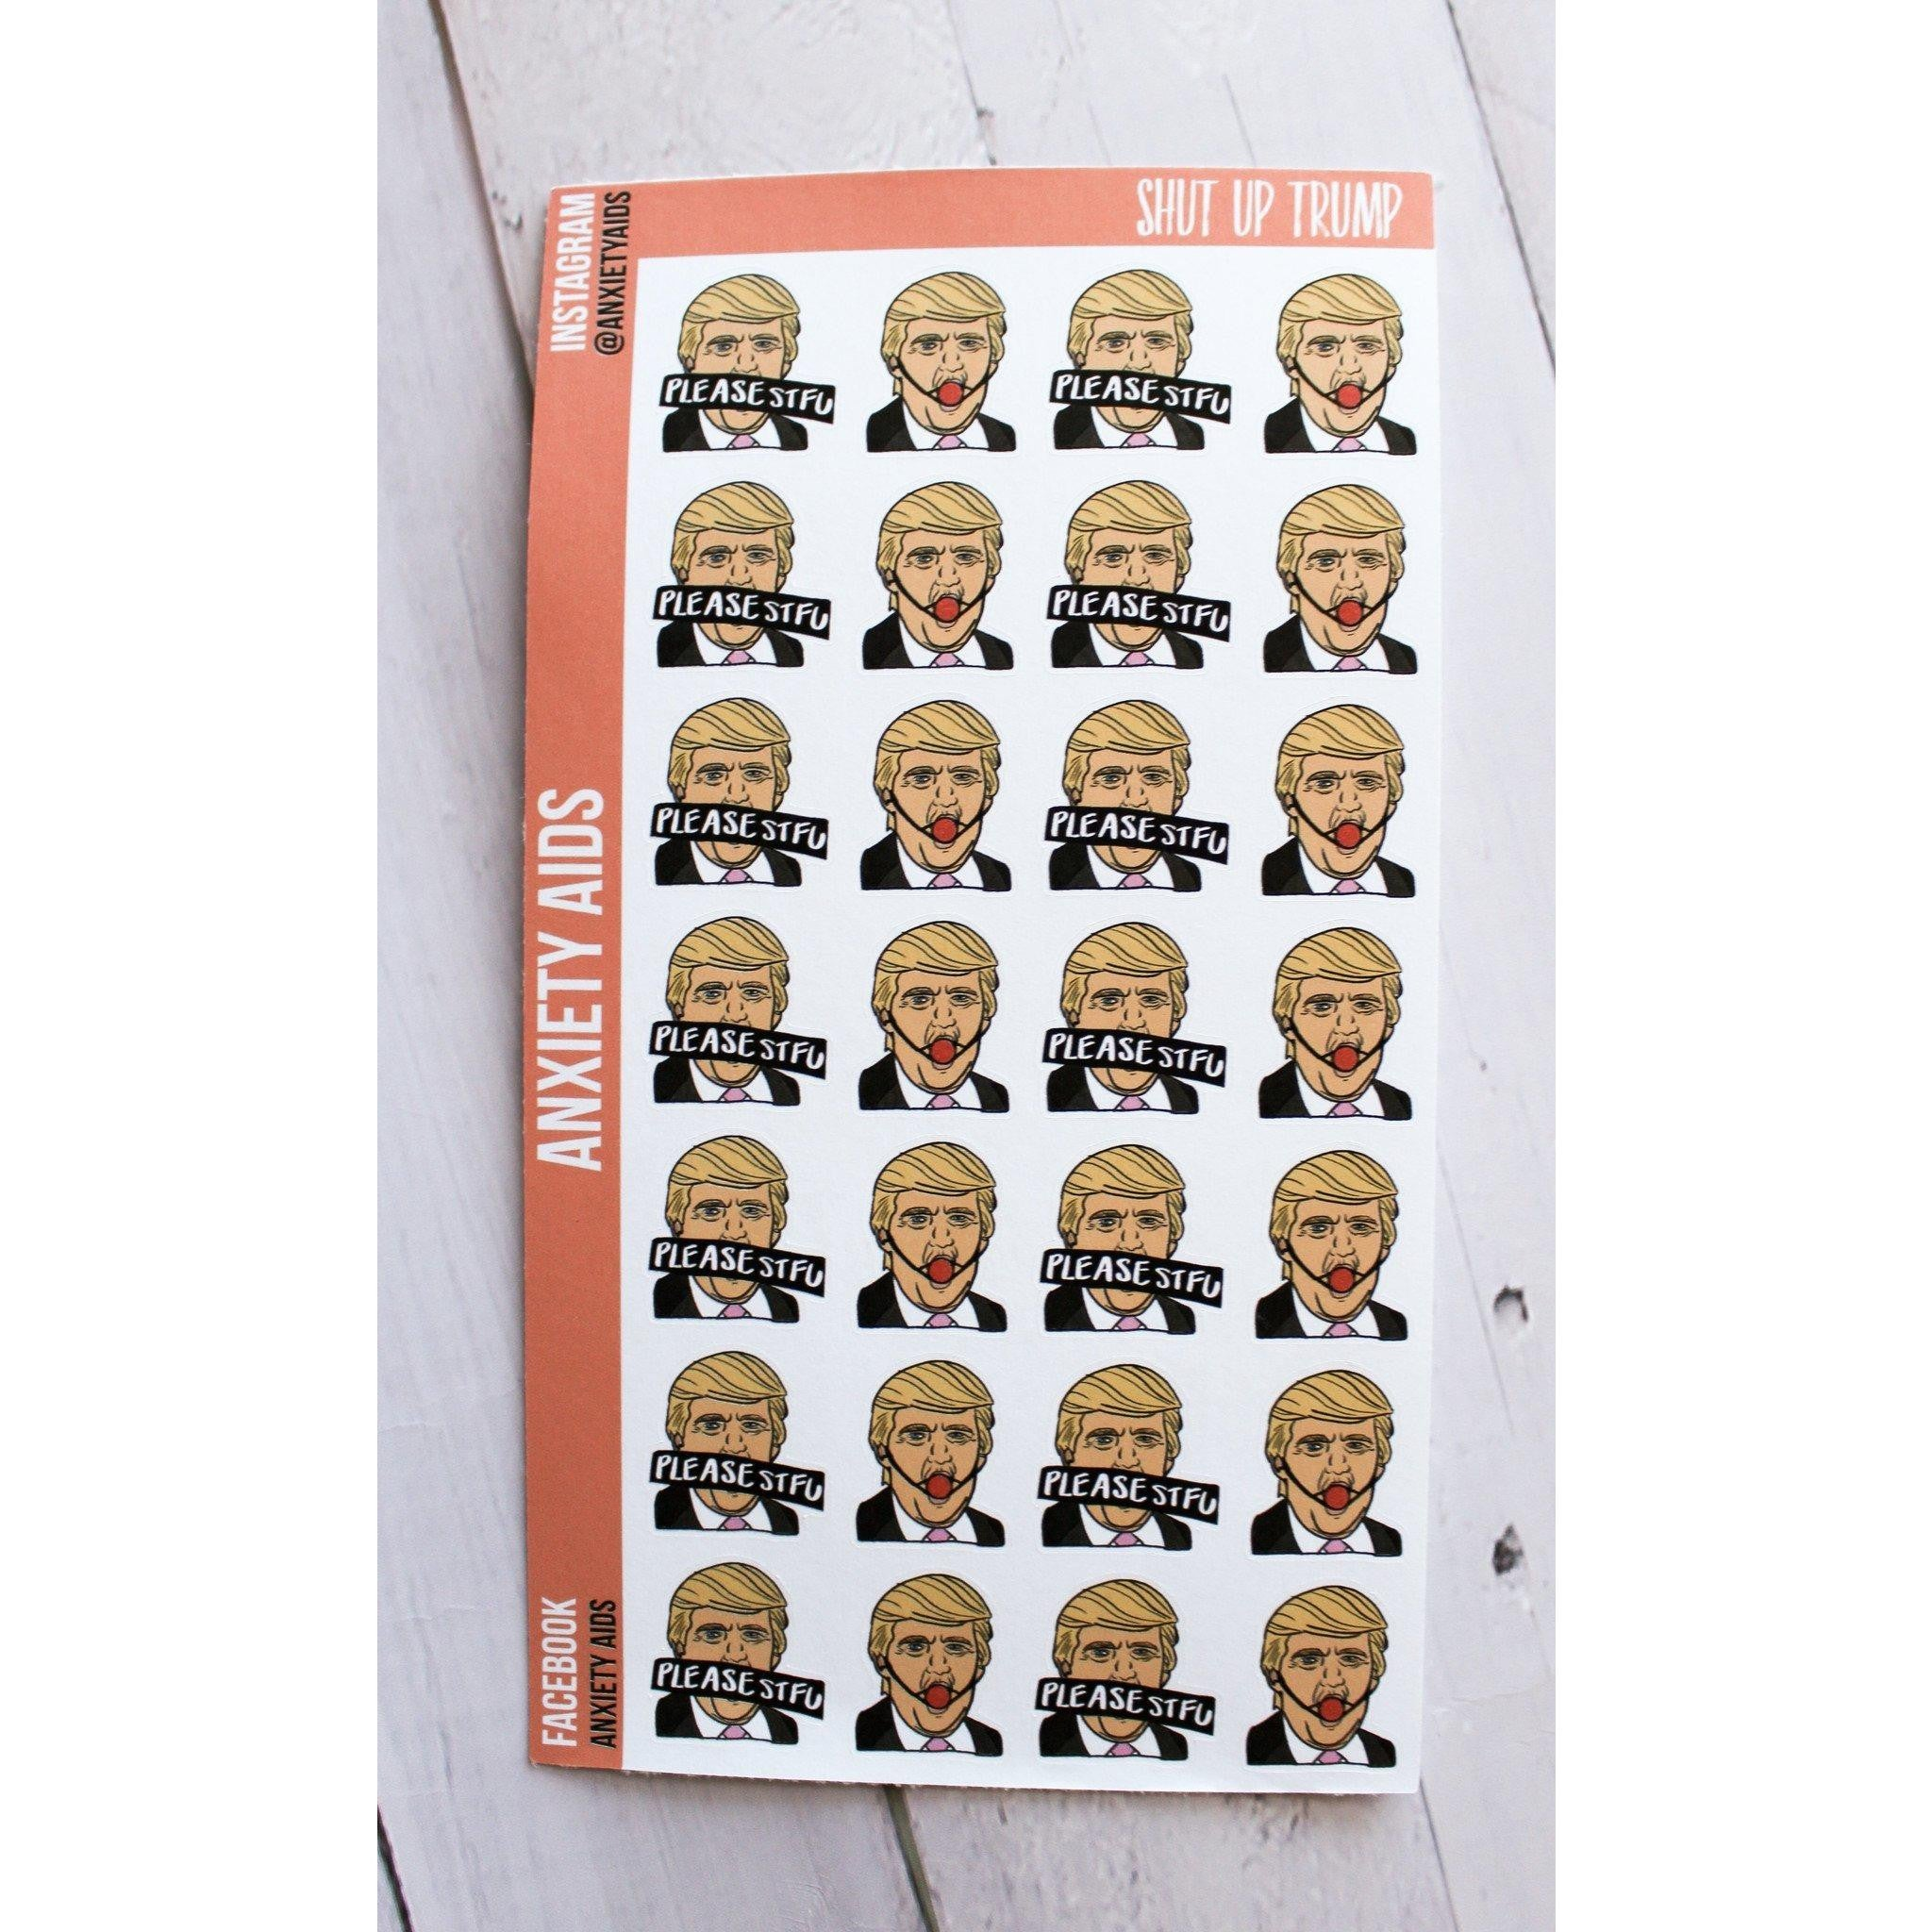 Shut up Trump Stickers